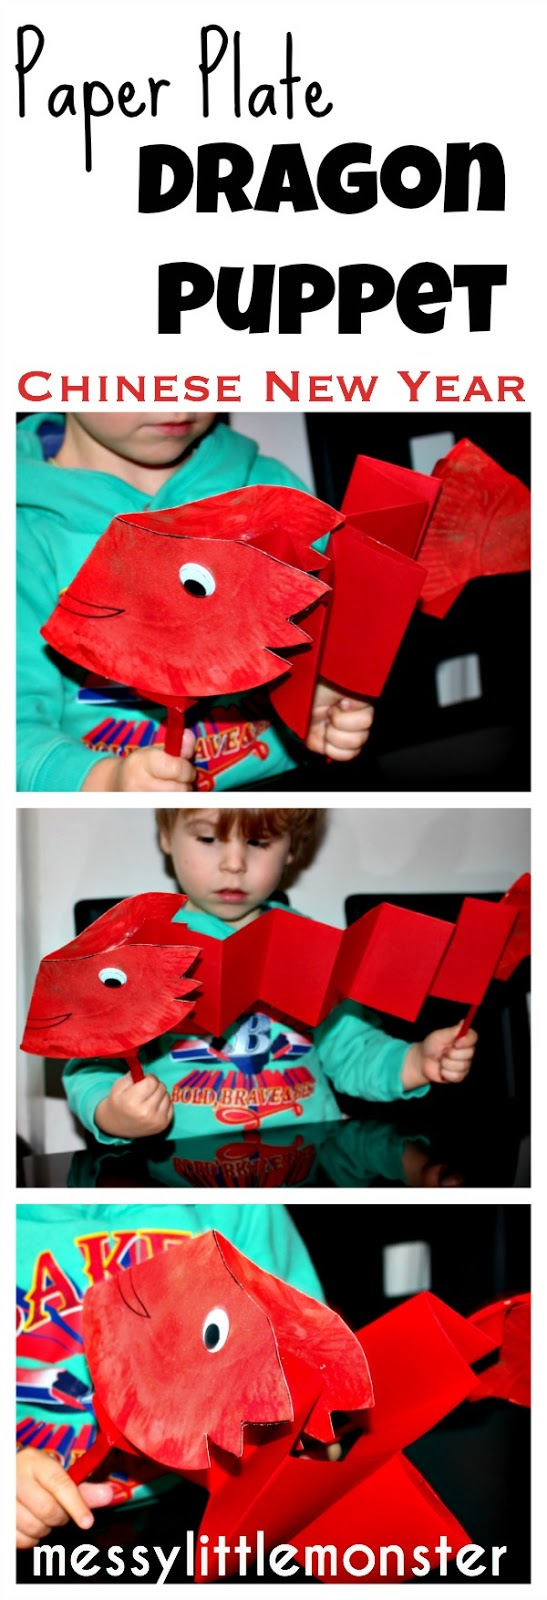 Paper plate dragon puppet.  A simple Chinese new year craft for kids, toddlers, preschoolers, eyfs.